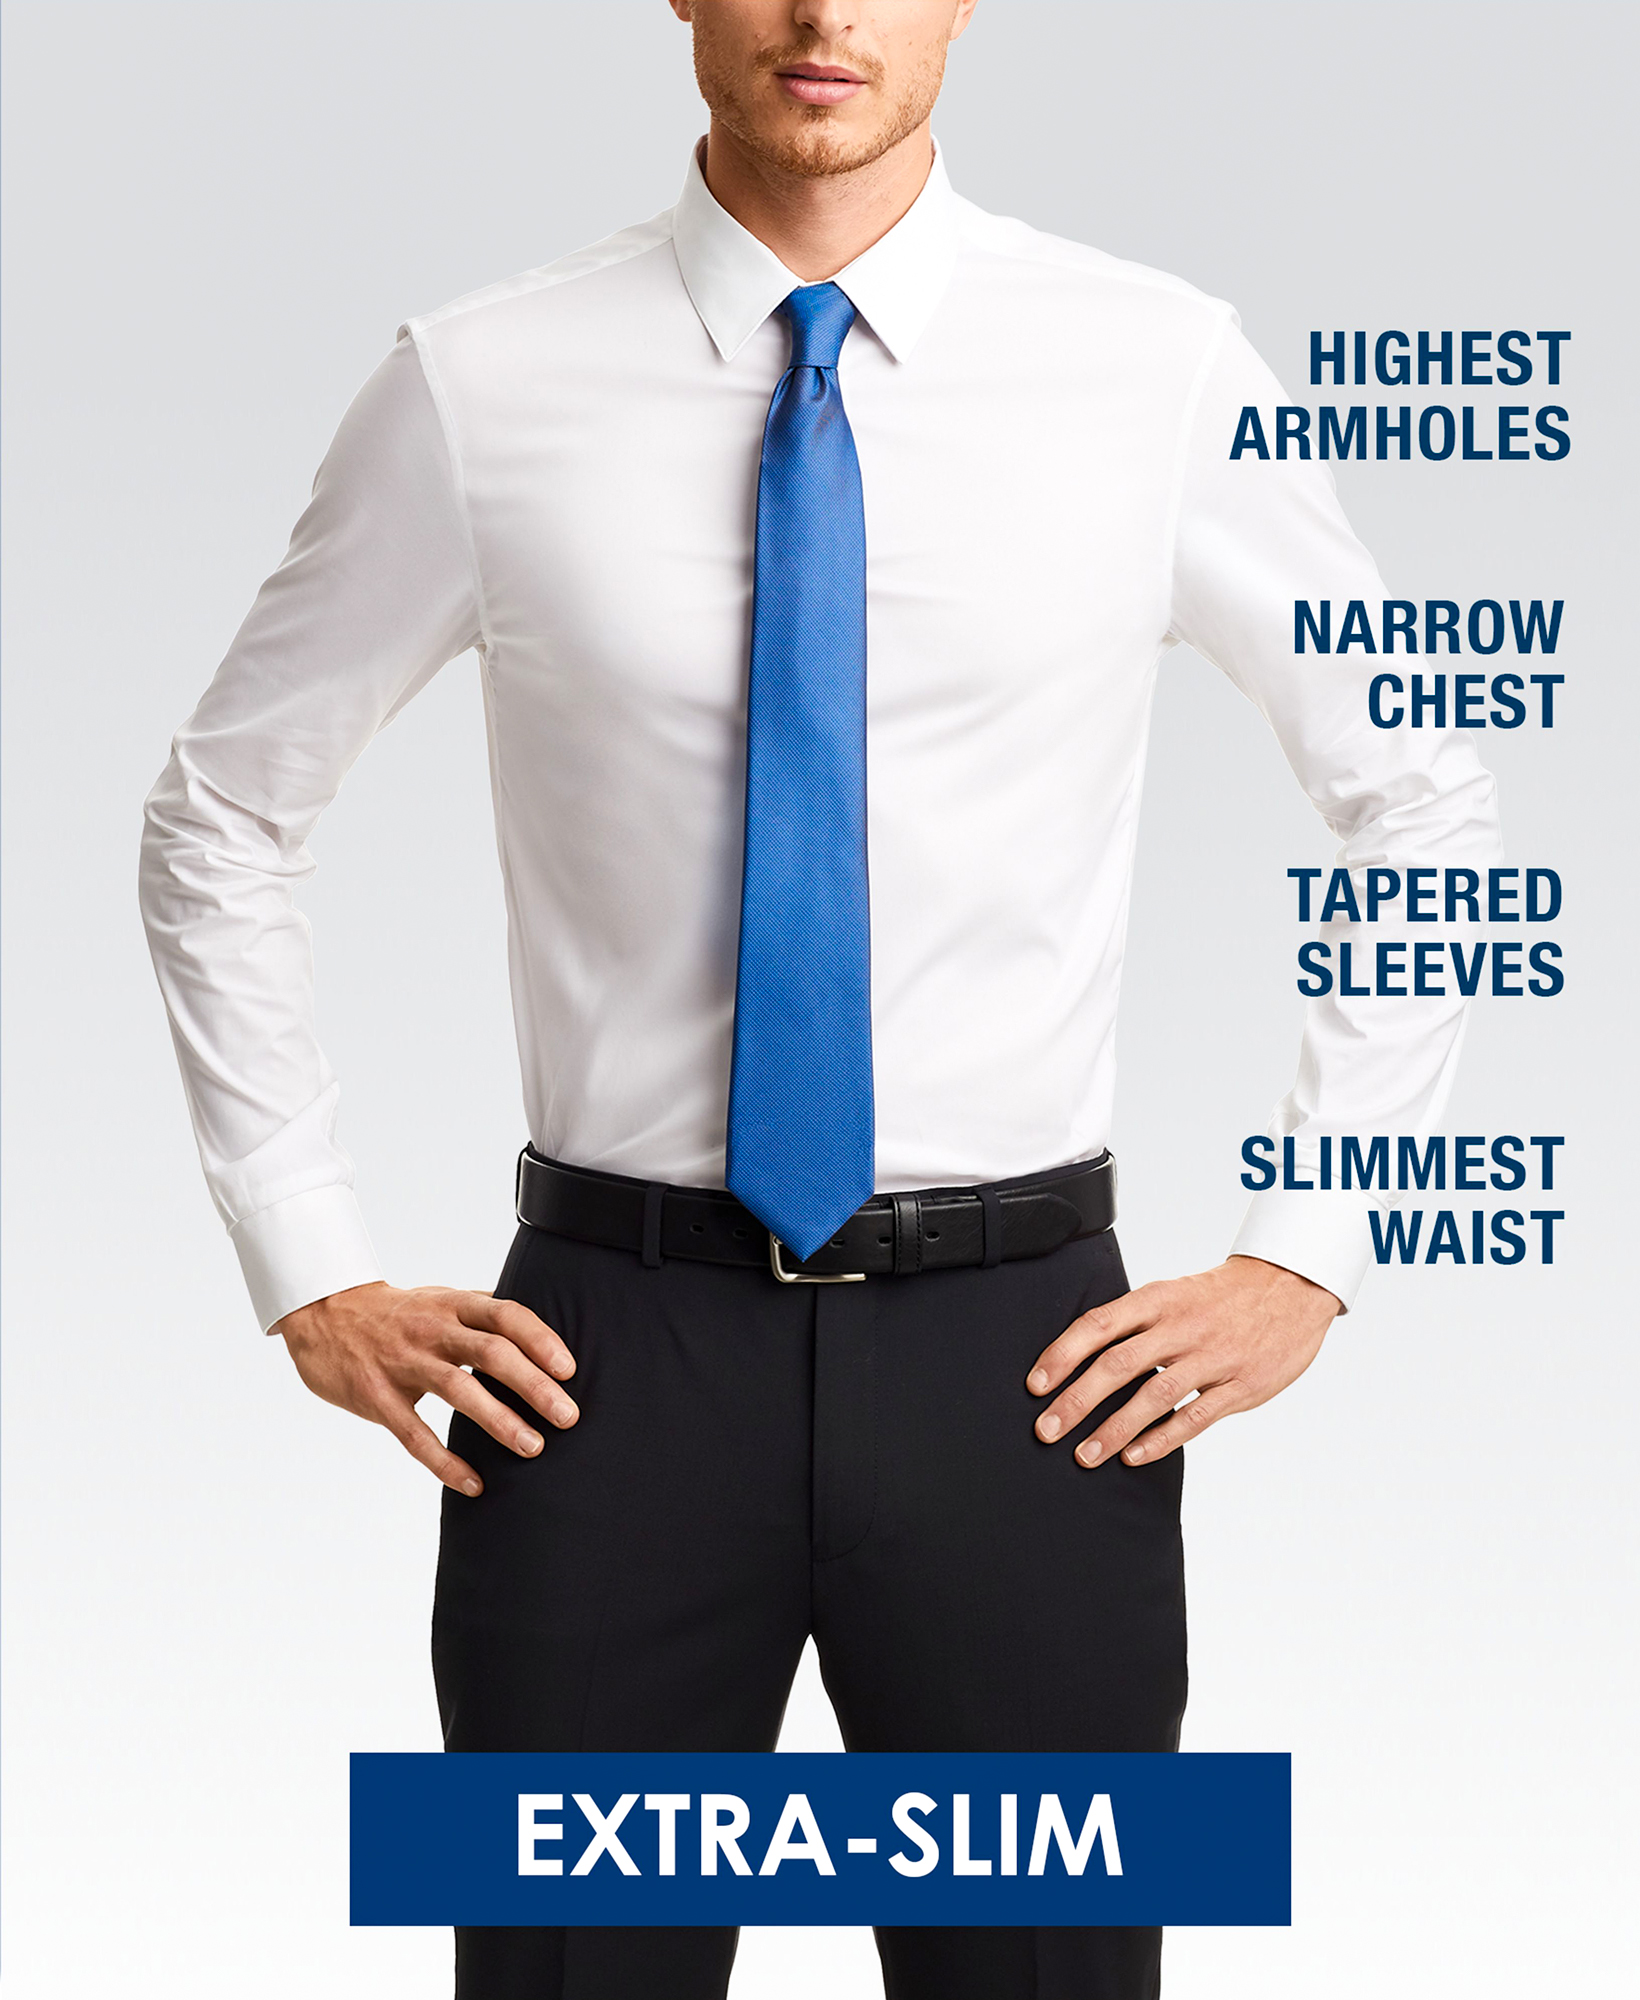 Extra-slim (skinny) fit dress shirt style